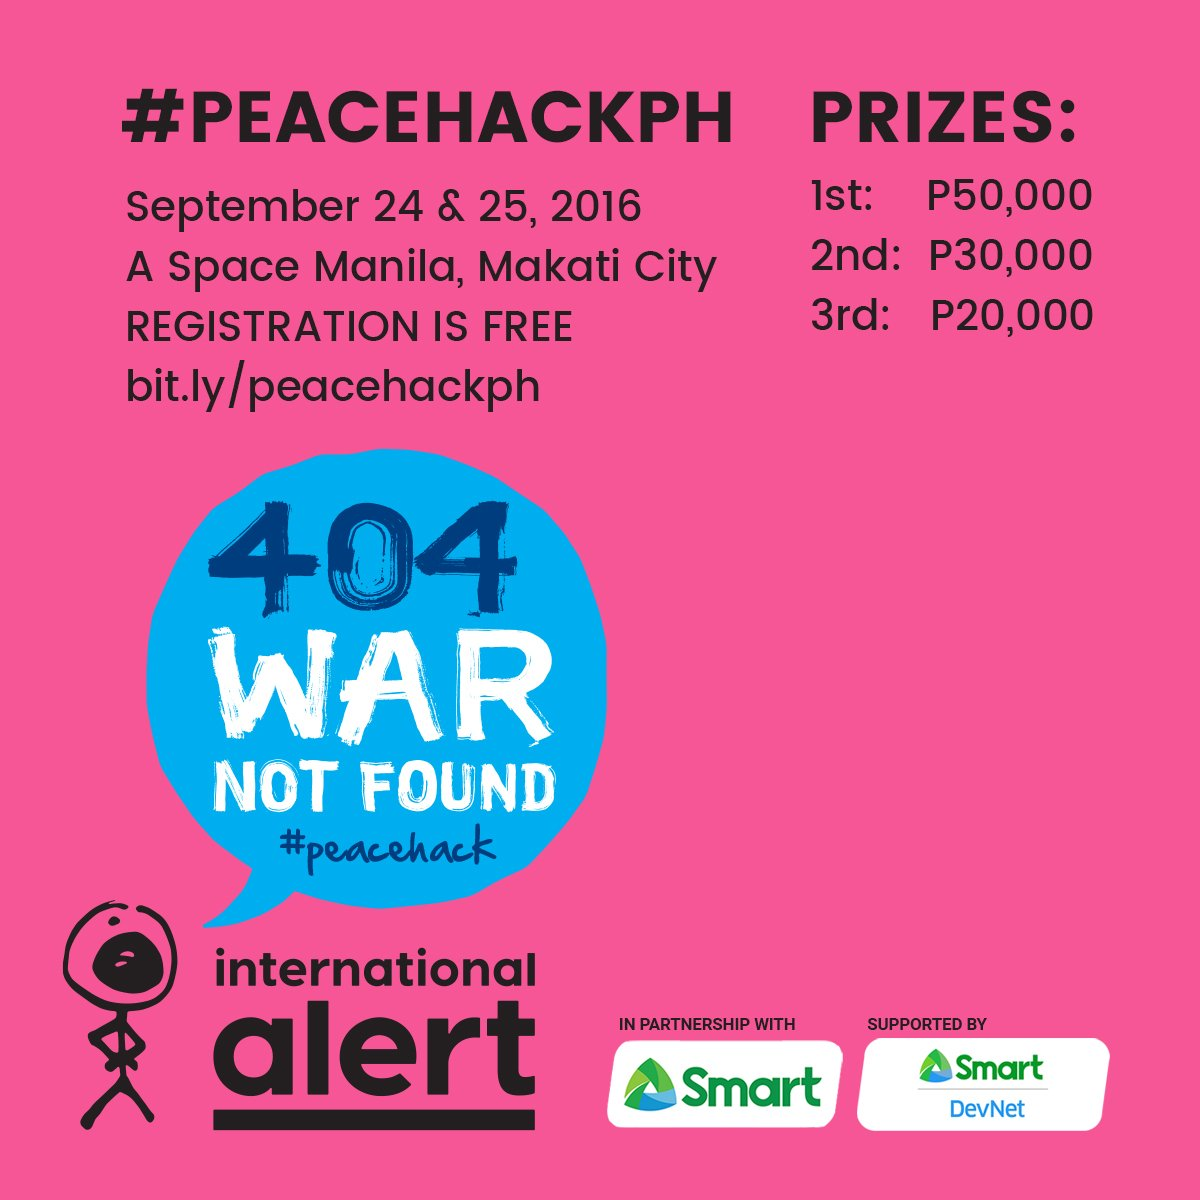 Alert PH's 1st #peacehack #hackathon is on Sept. 24&25! Register for free here: https://t.co/YaerjOVLCm @LiveSmart https://t.co/waf3W207Xw